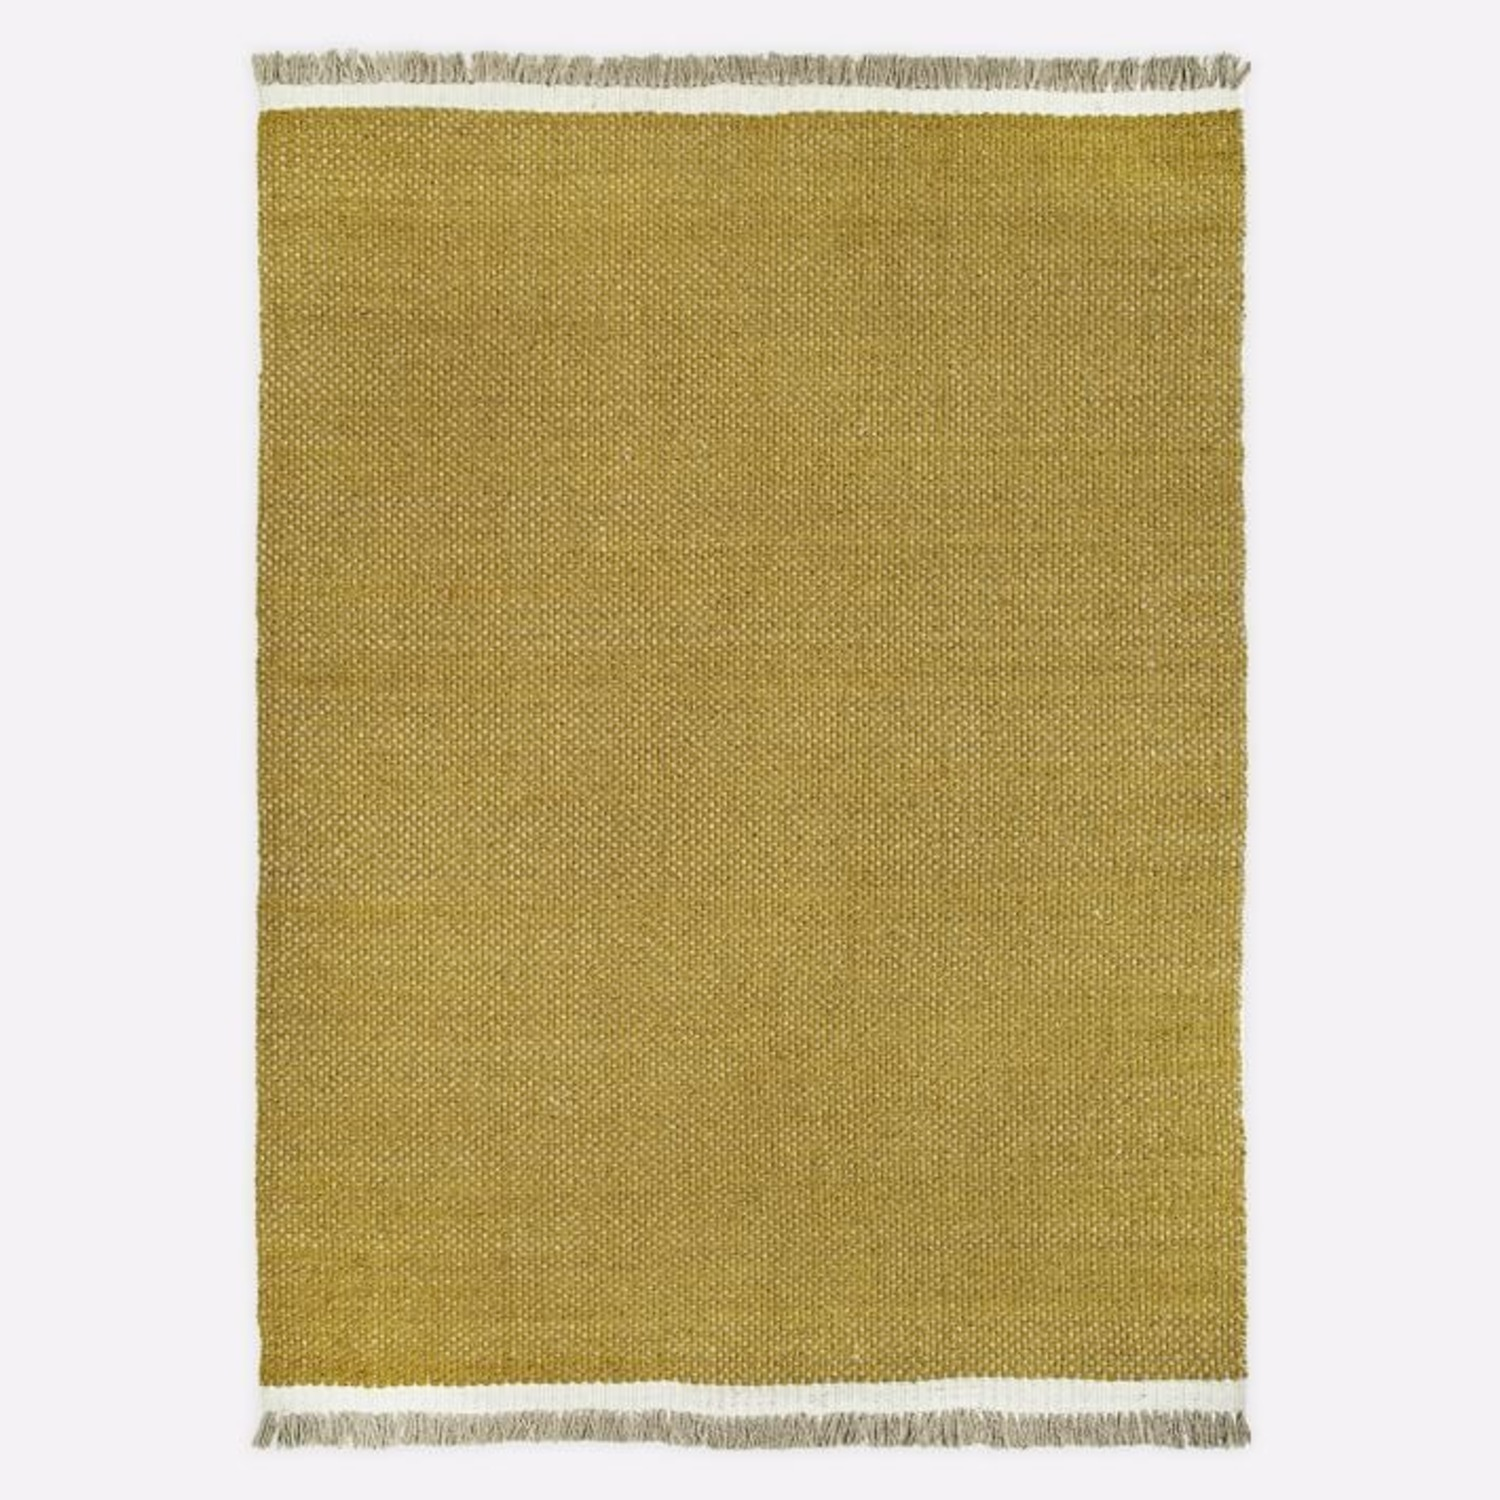 West Elm Rope Crossweave Indoor/Outdoor Rug - image-1